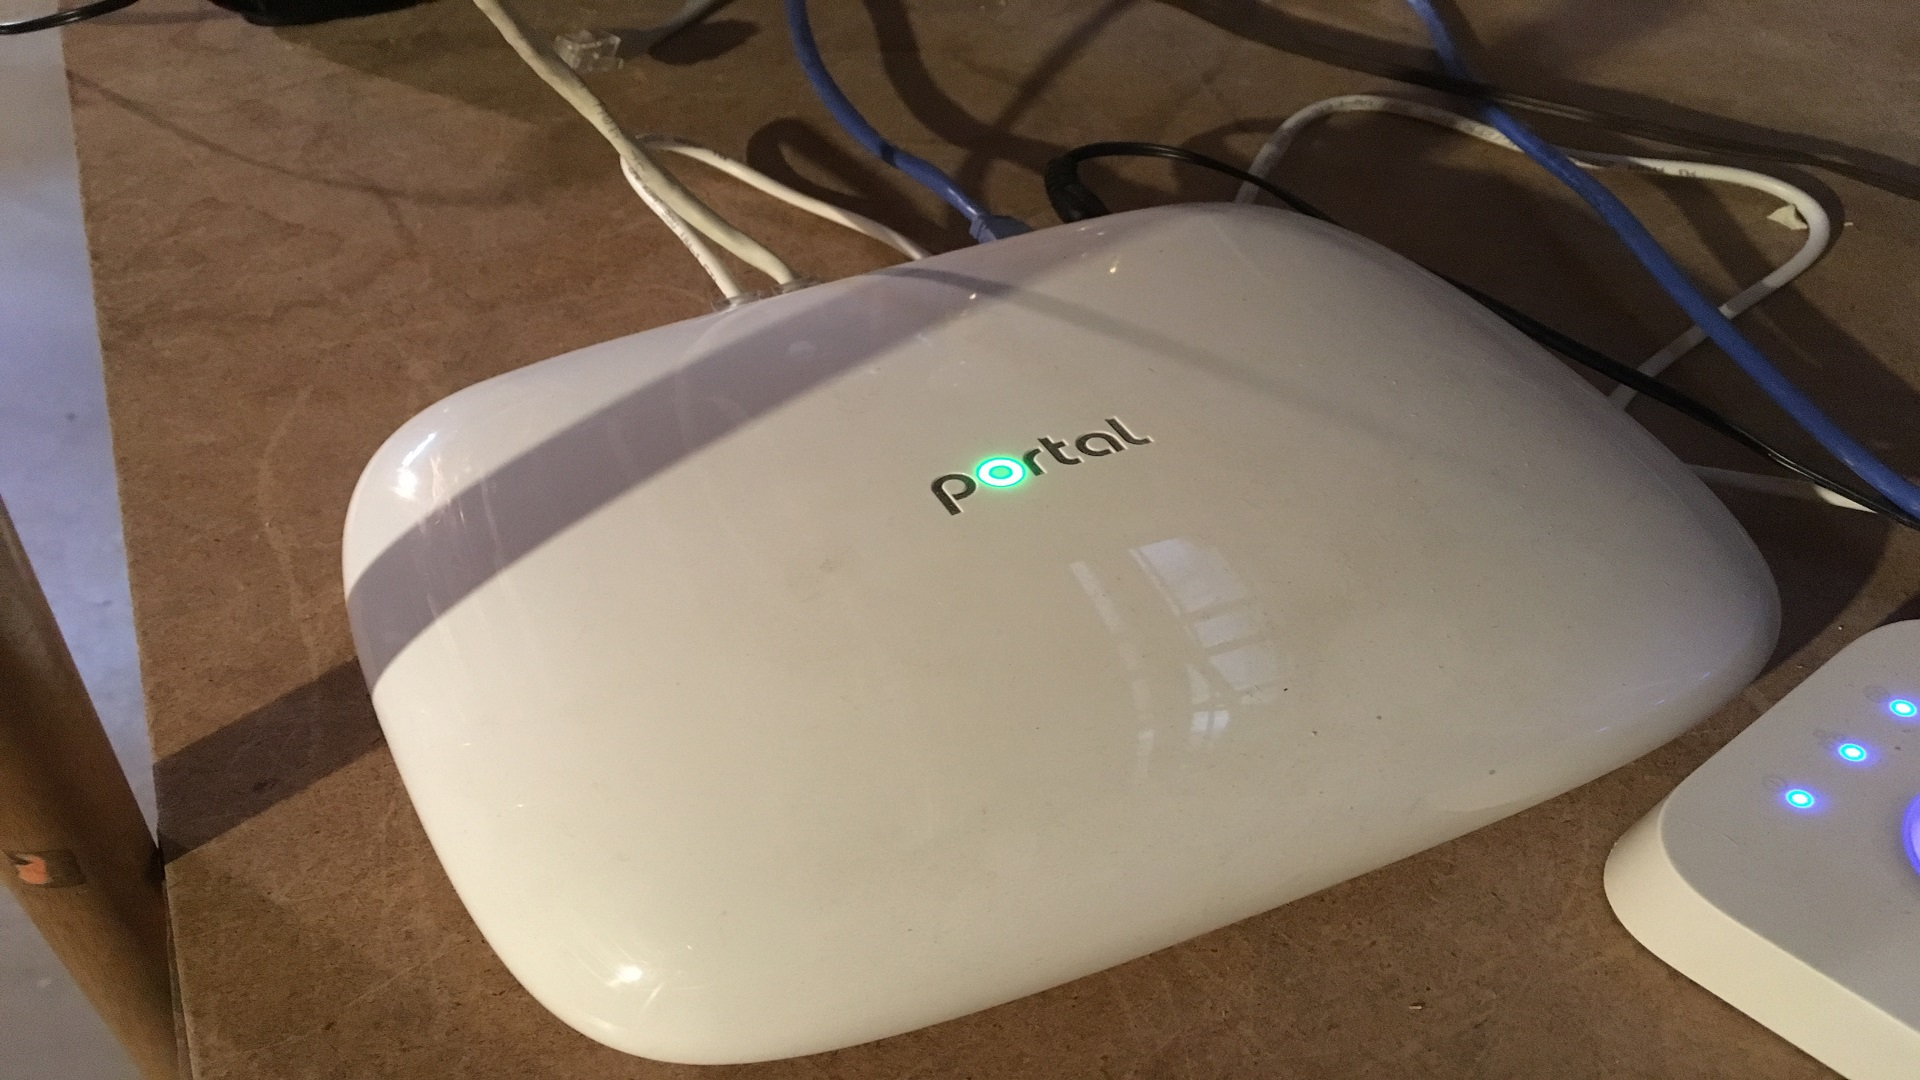 How to test and troubleshoot your home network - poor connection